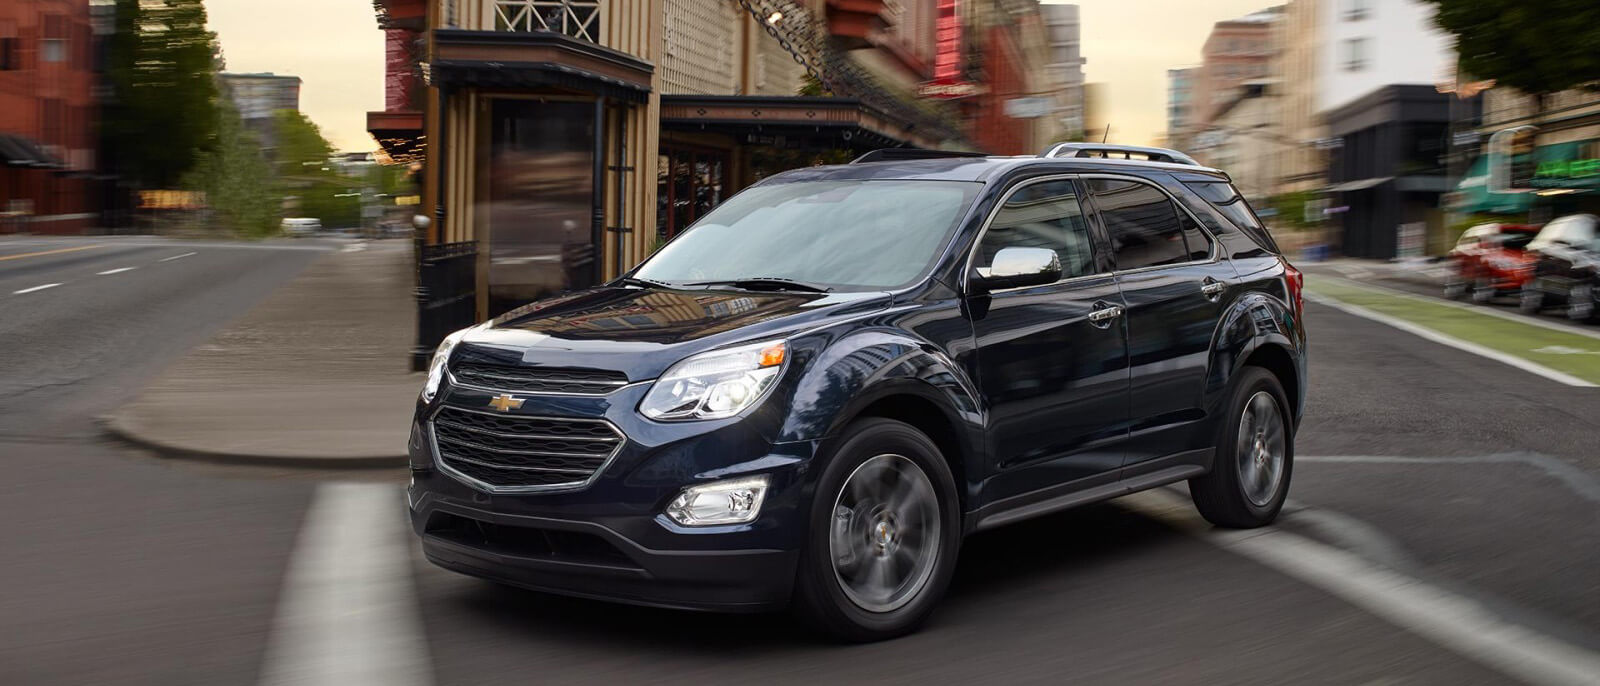 Equinox 2010 chevrolet equinox towing capacity : The 2017 Chevy Equinox Trims Delight Tampa and Sarasota